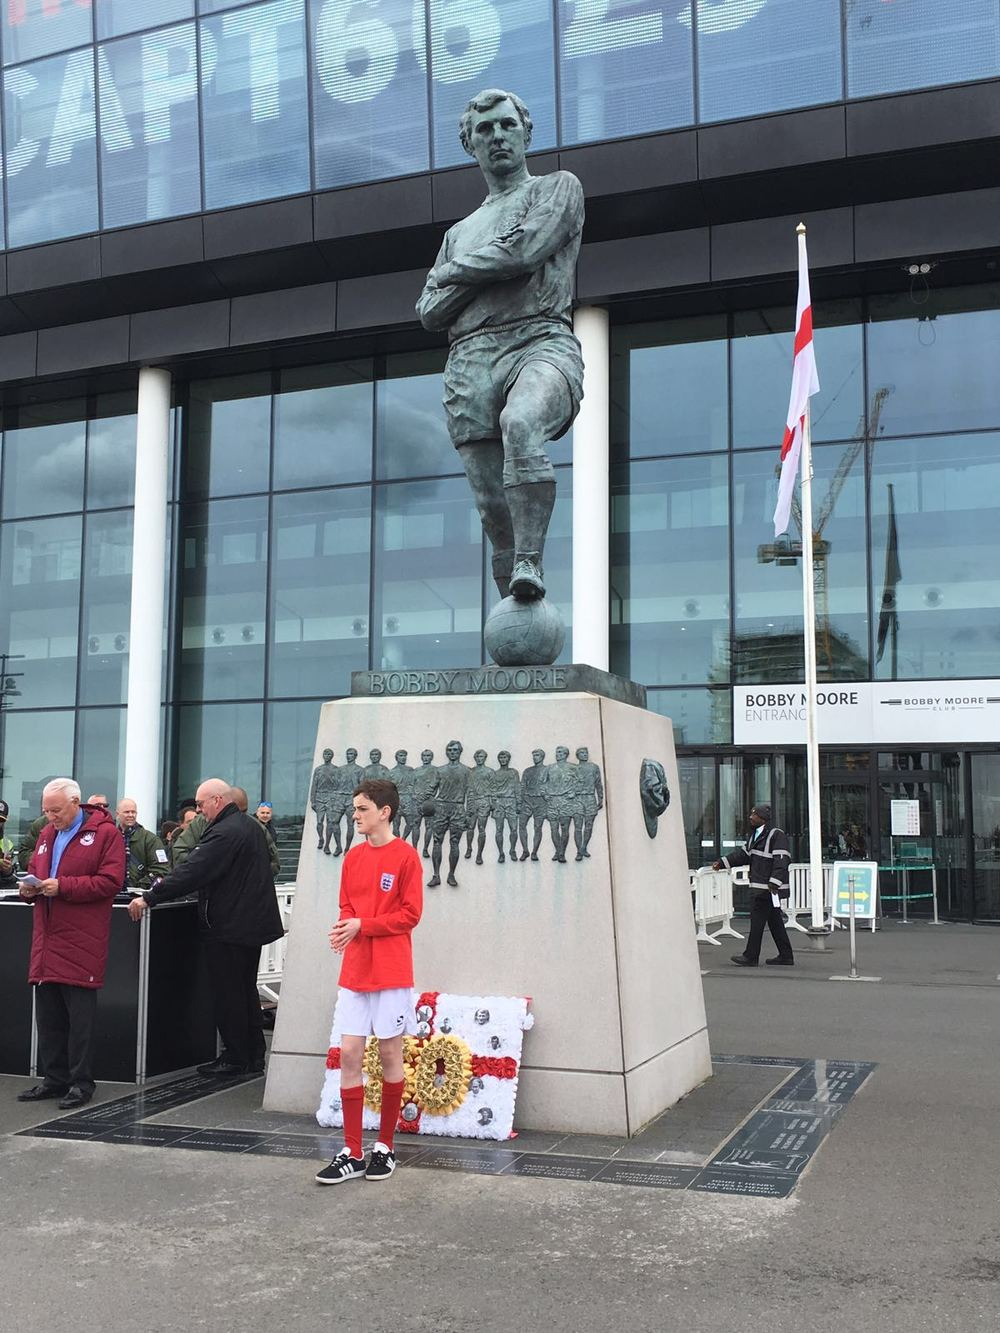 Jonjo Heuerman has arrived at his final destination after walking and cycling 450 miles to return the Jules Rimet trophy back to Wembley for the 50th Anniversary of 1966.